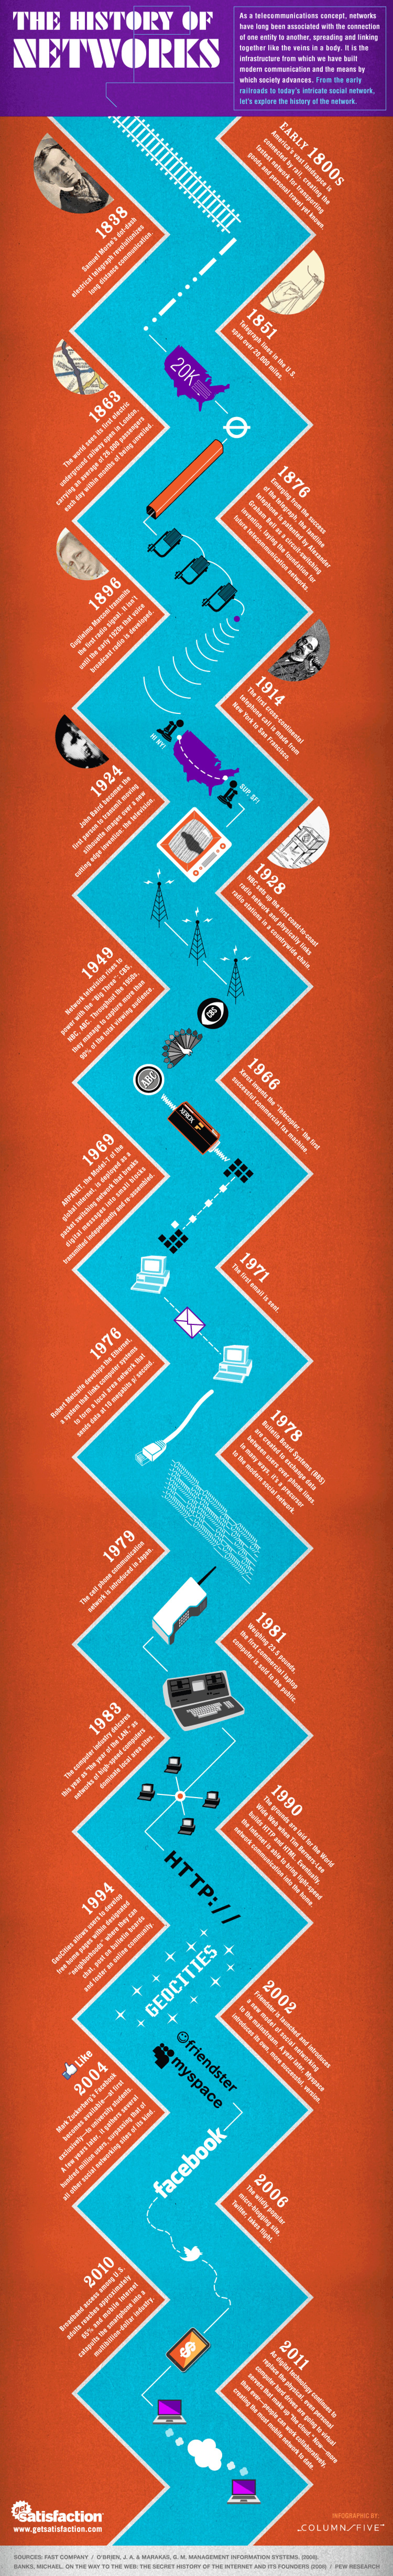 The History of Networks Infographic